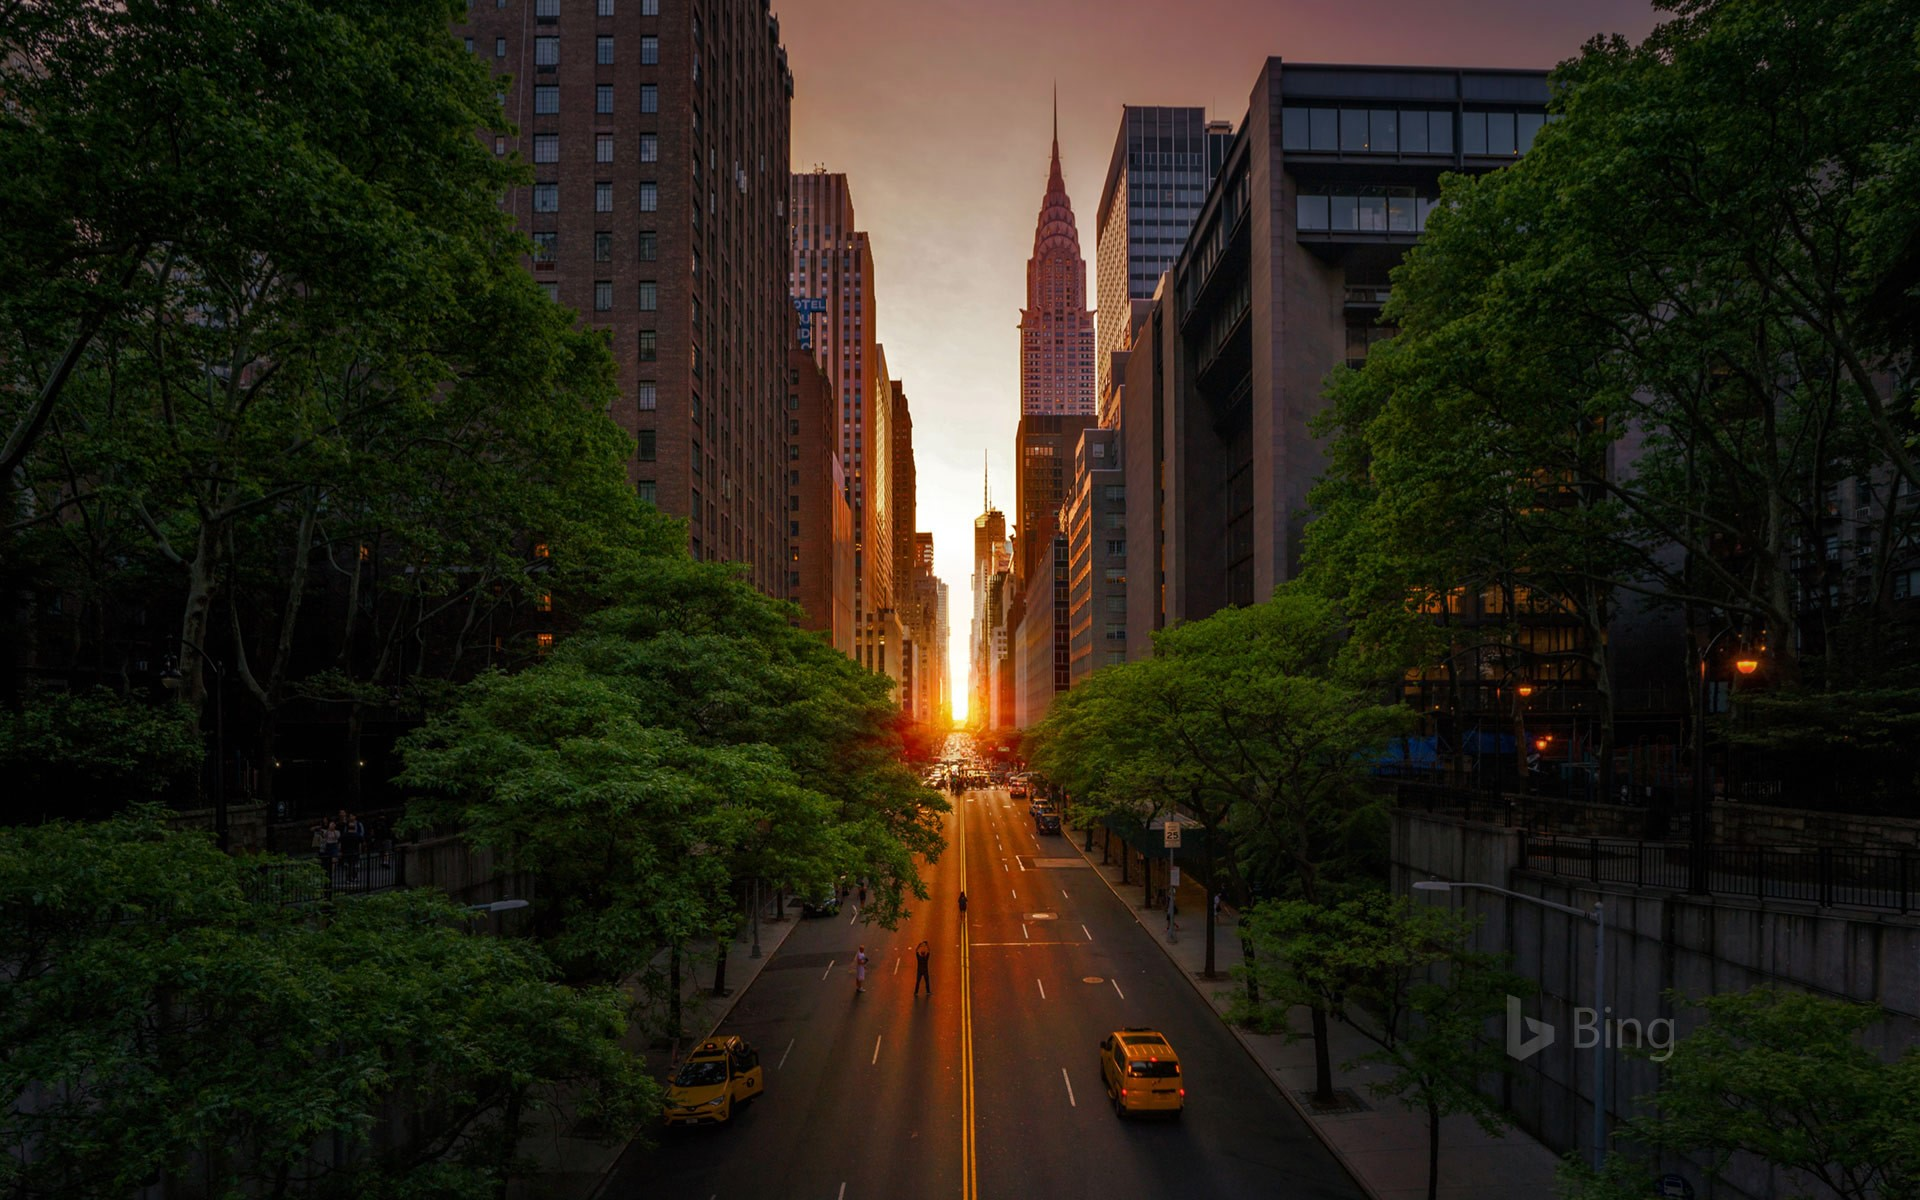 42nd Street with the Chrysler Building during Manhattanhenge in 2018, New York City